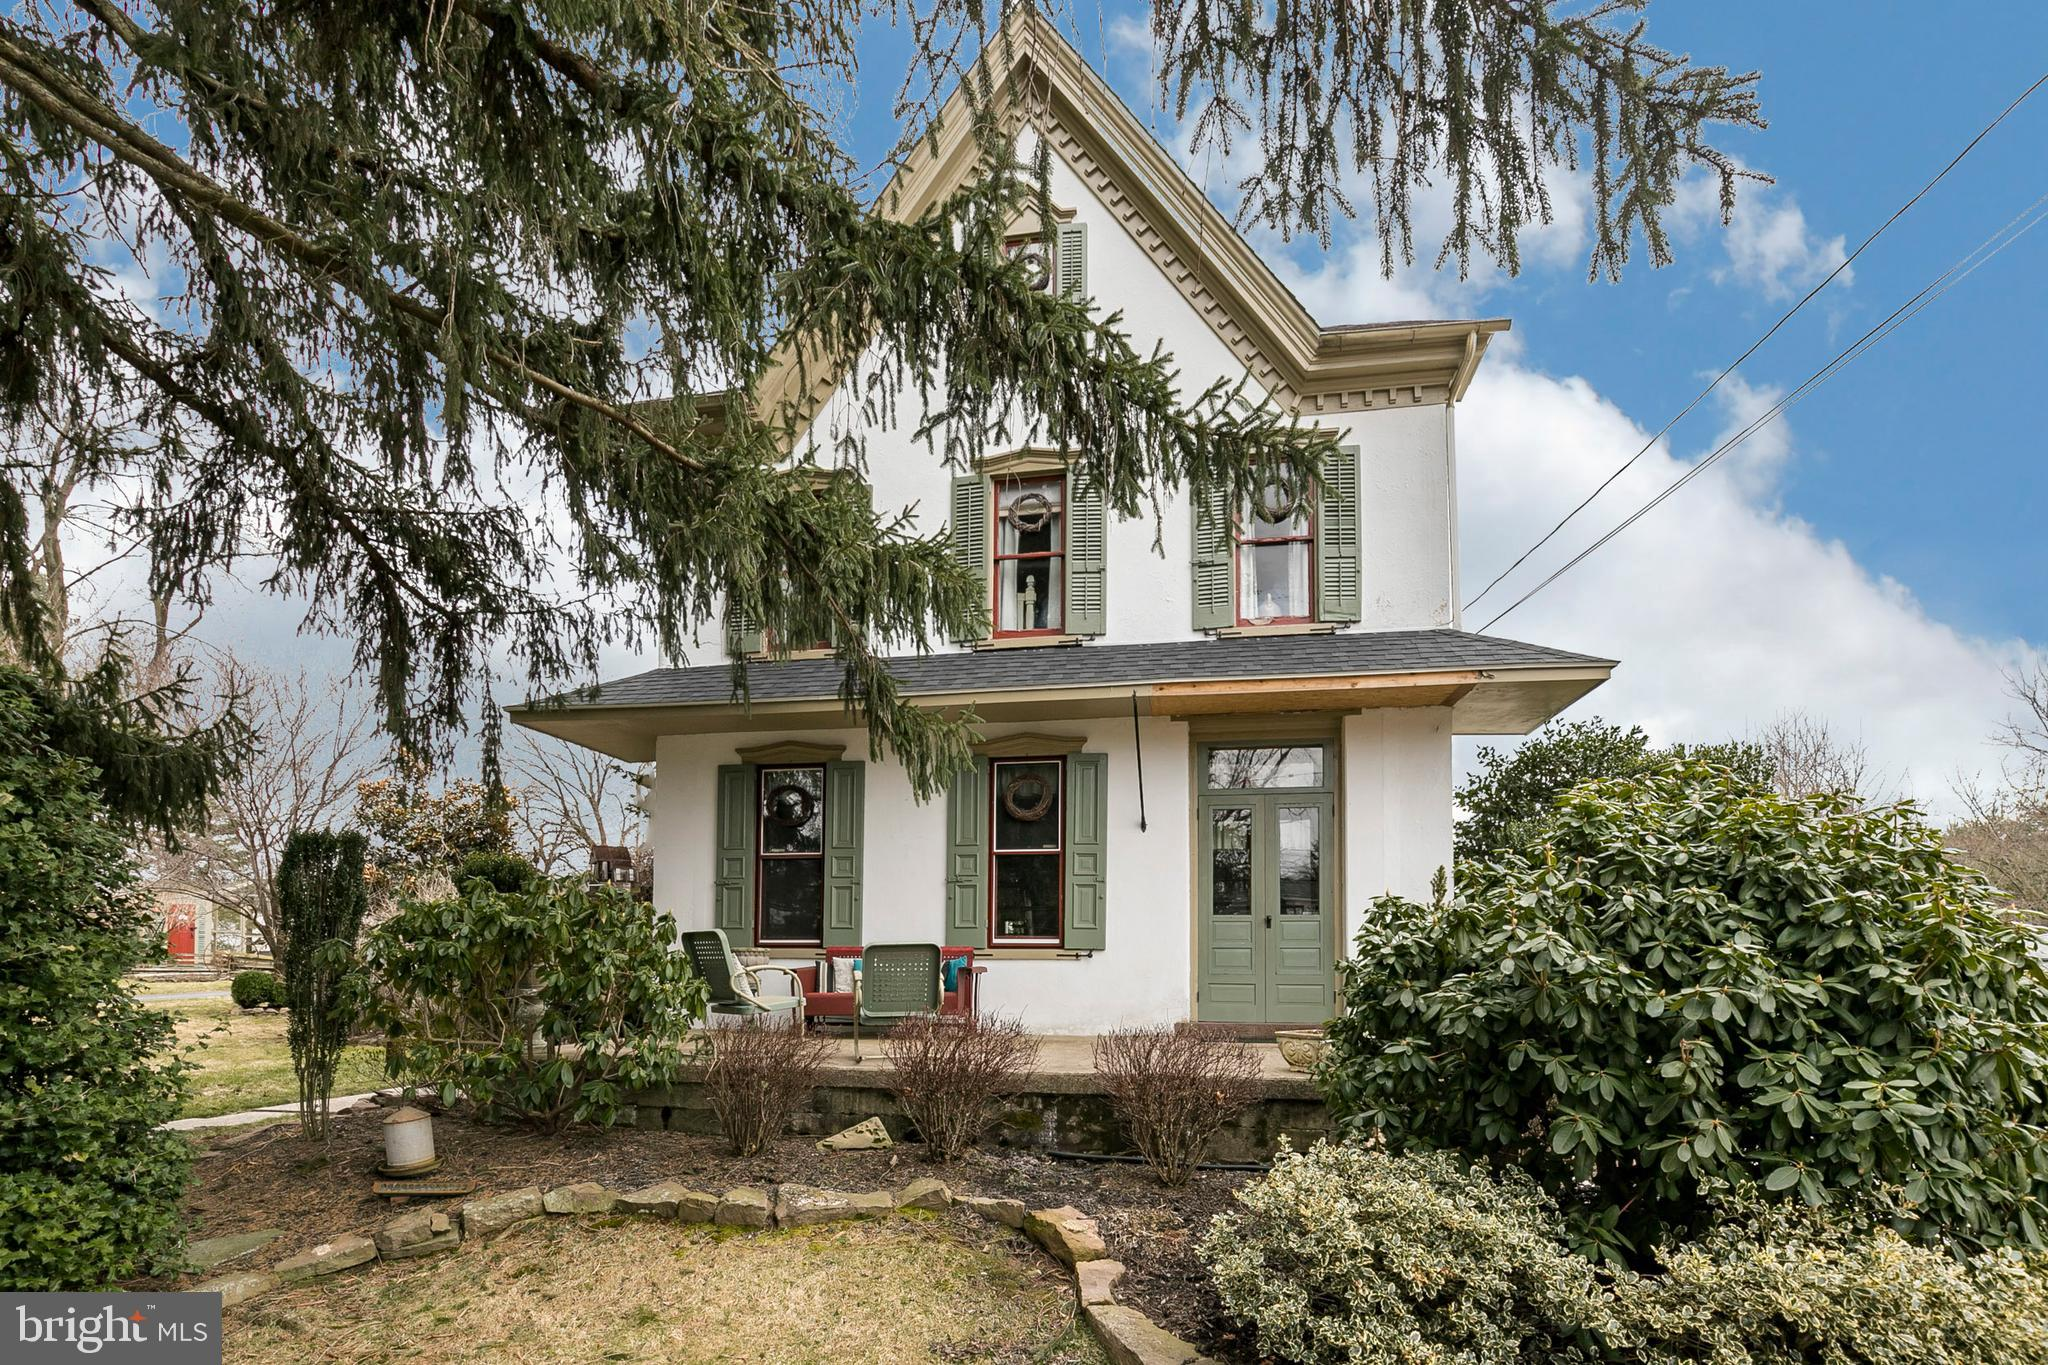 1512 OLD SCHUYLKILL ROAD, SPRING CITY, PA 19475